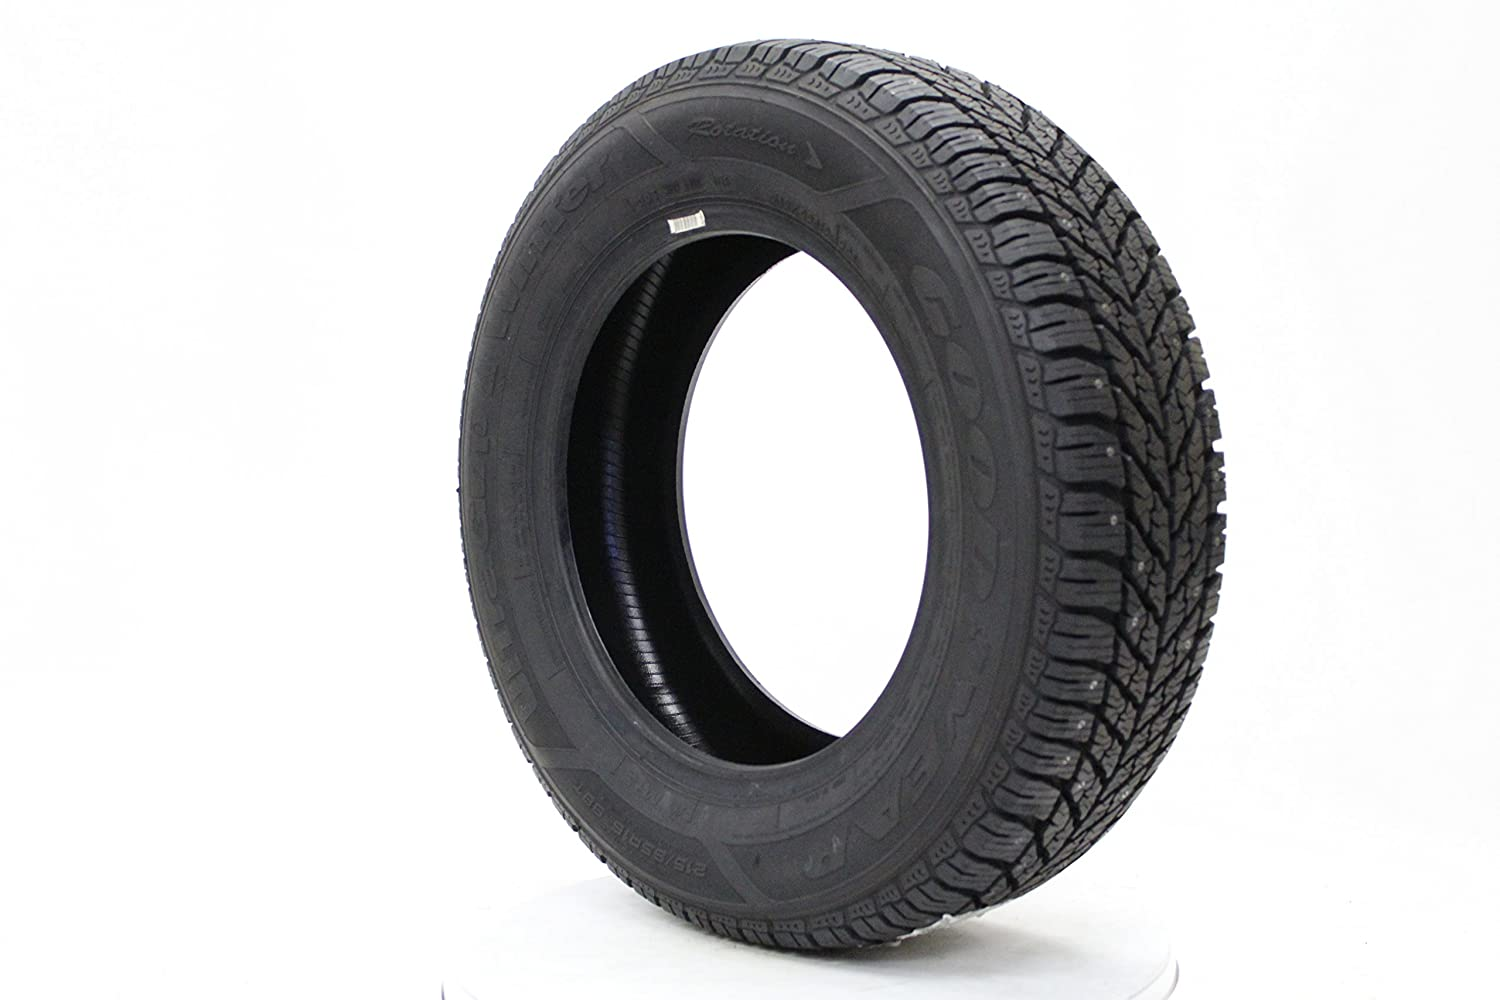 Goodyear Ultra Grip Winter Radial Tire - 215/70R15 98T 766280355